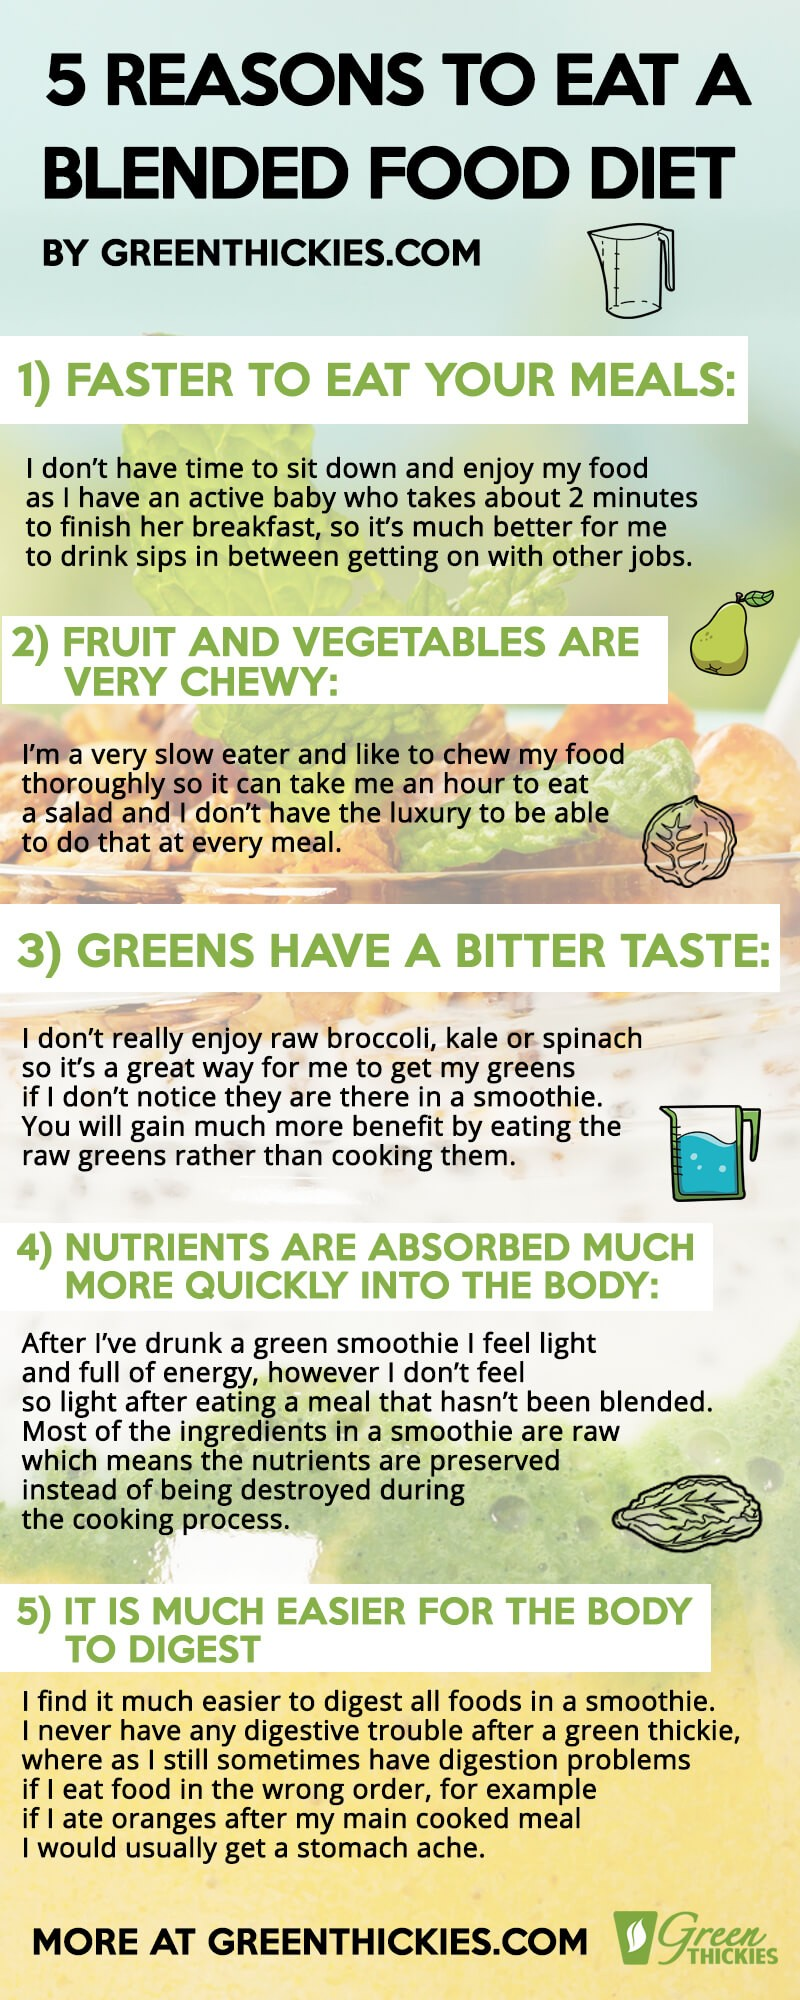 How To Make A Smoothie Without Fruit Taste Delicious: 5 Ways; 5 Reasons to eat a blended food diet